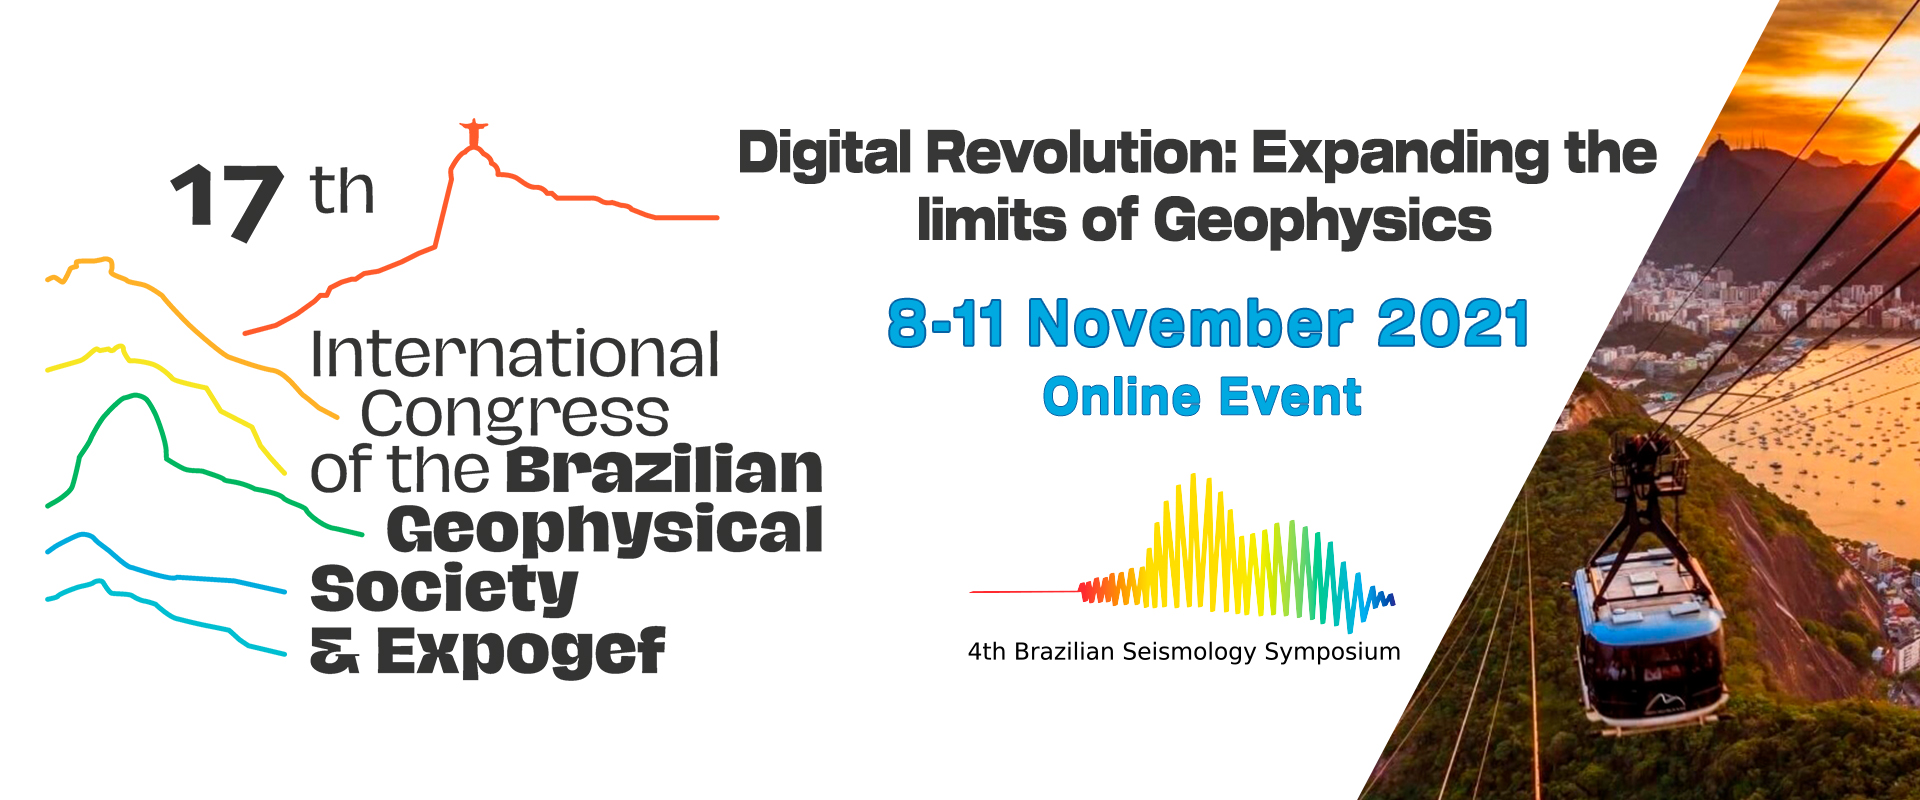 17th International Congress of the Brazilian Geophysical Society and EXPOGEf